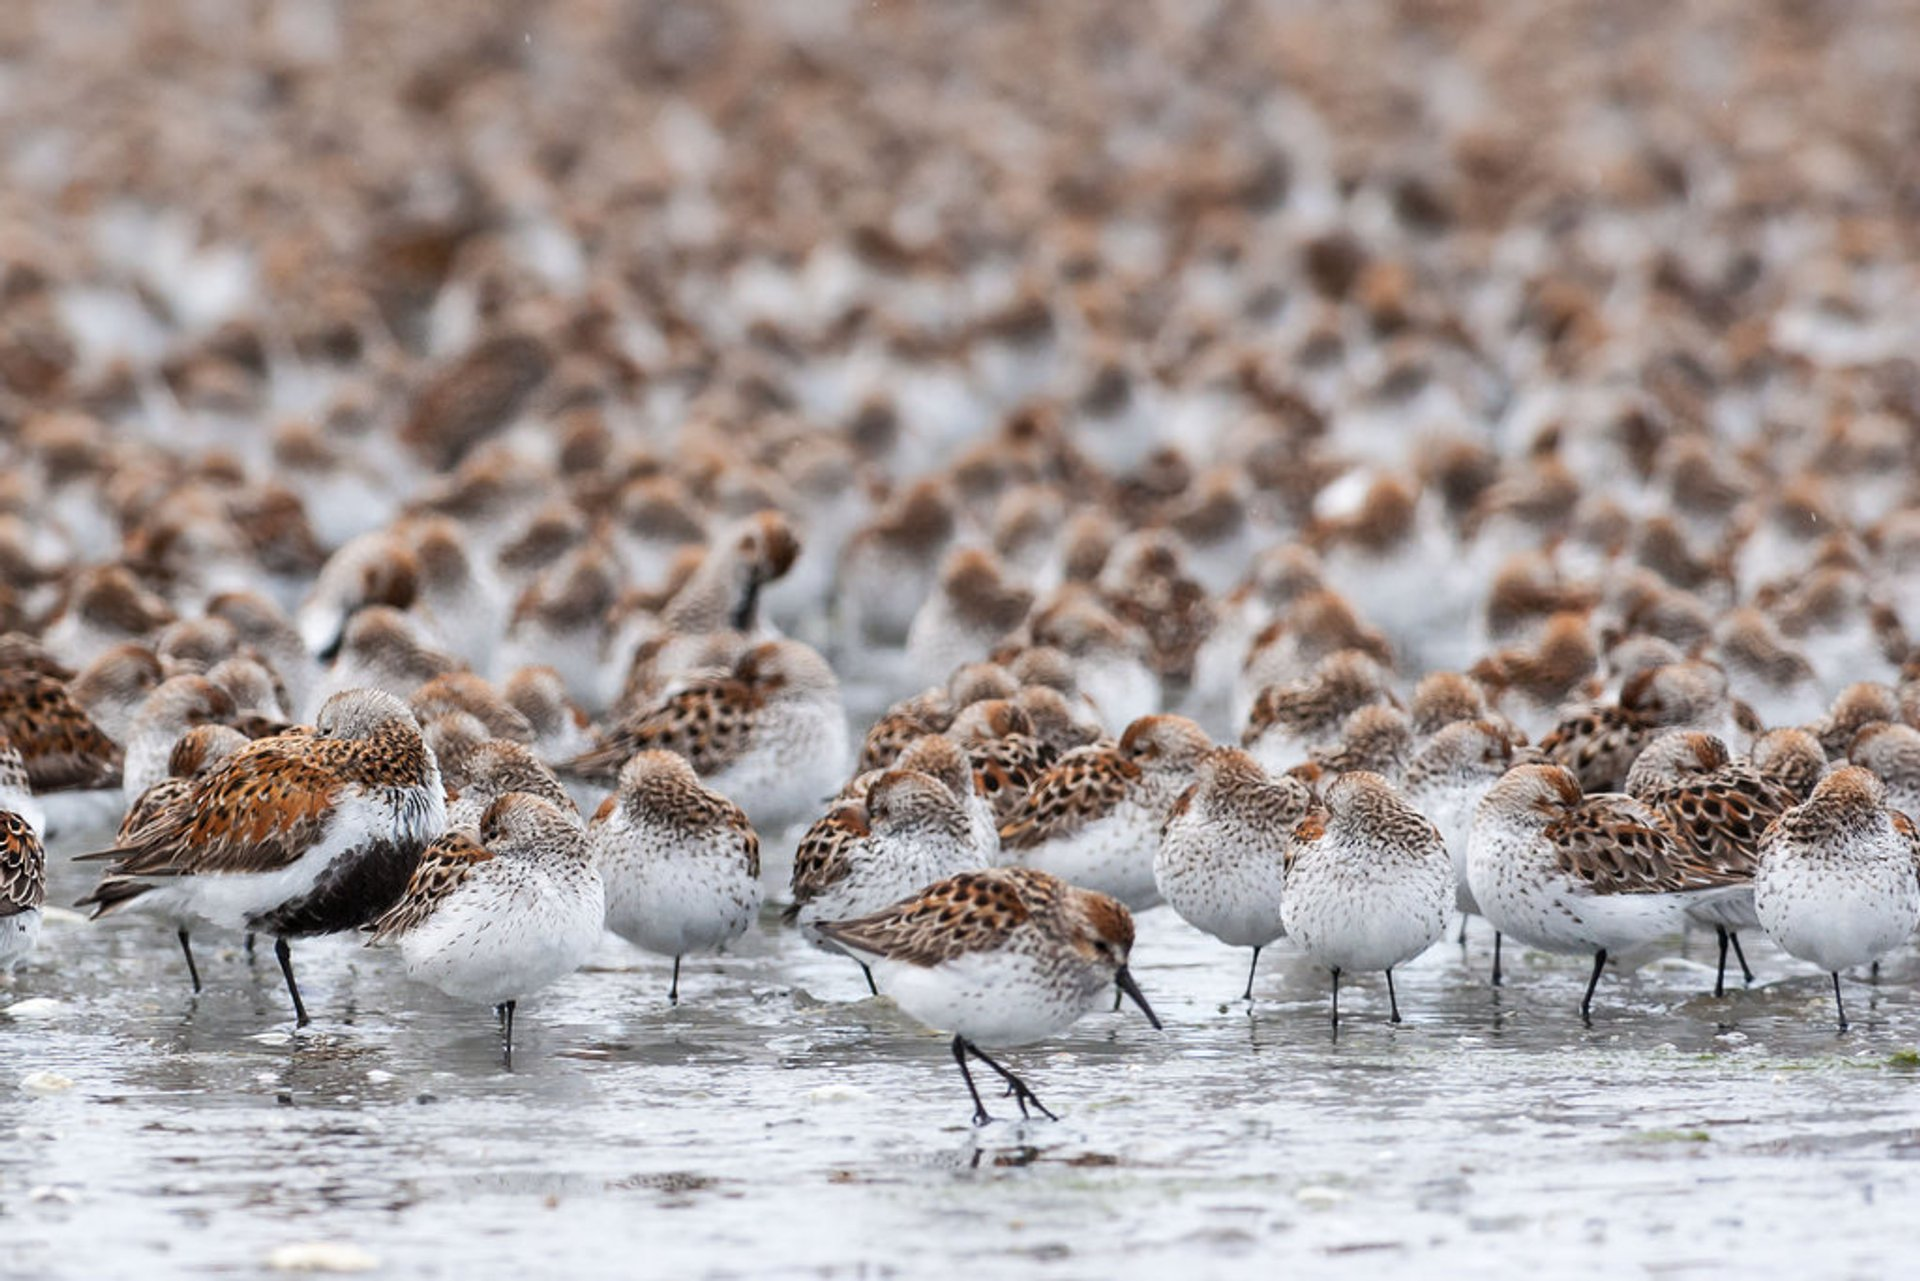 Bird Migration at Copper River Delta in Alaska 2020 - Best Time